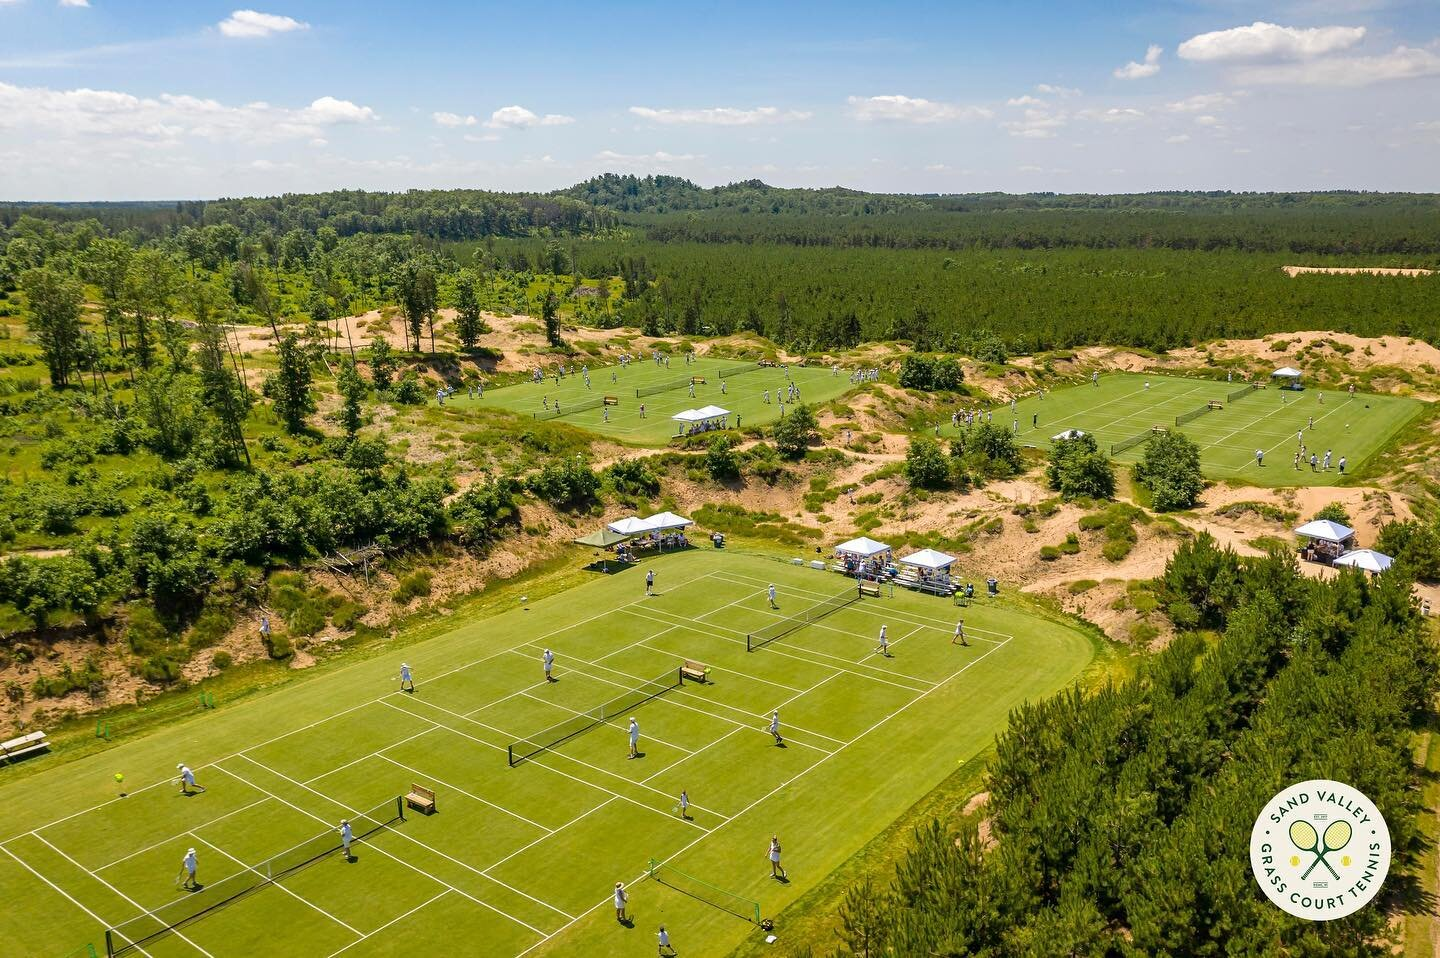 Grass tennis courts at Sand Valley